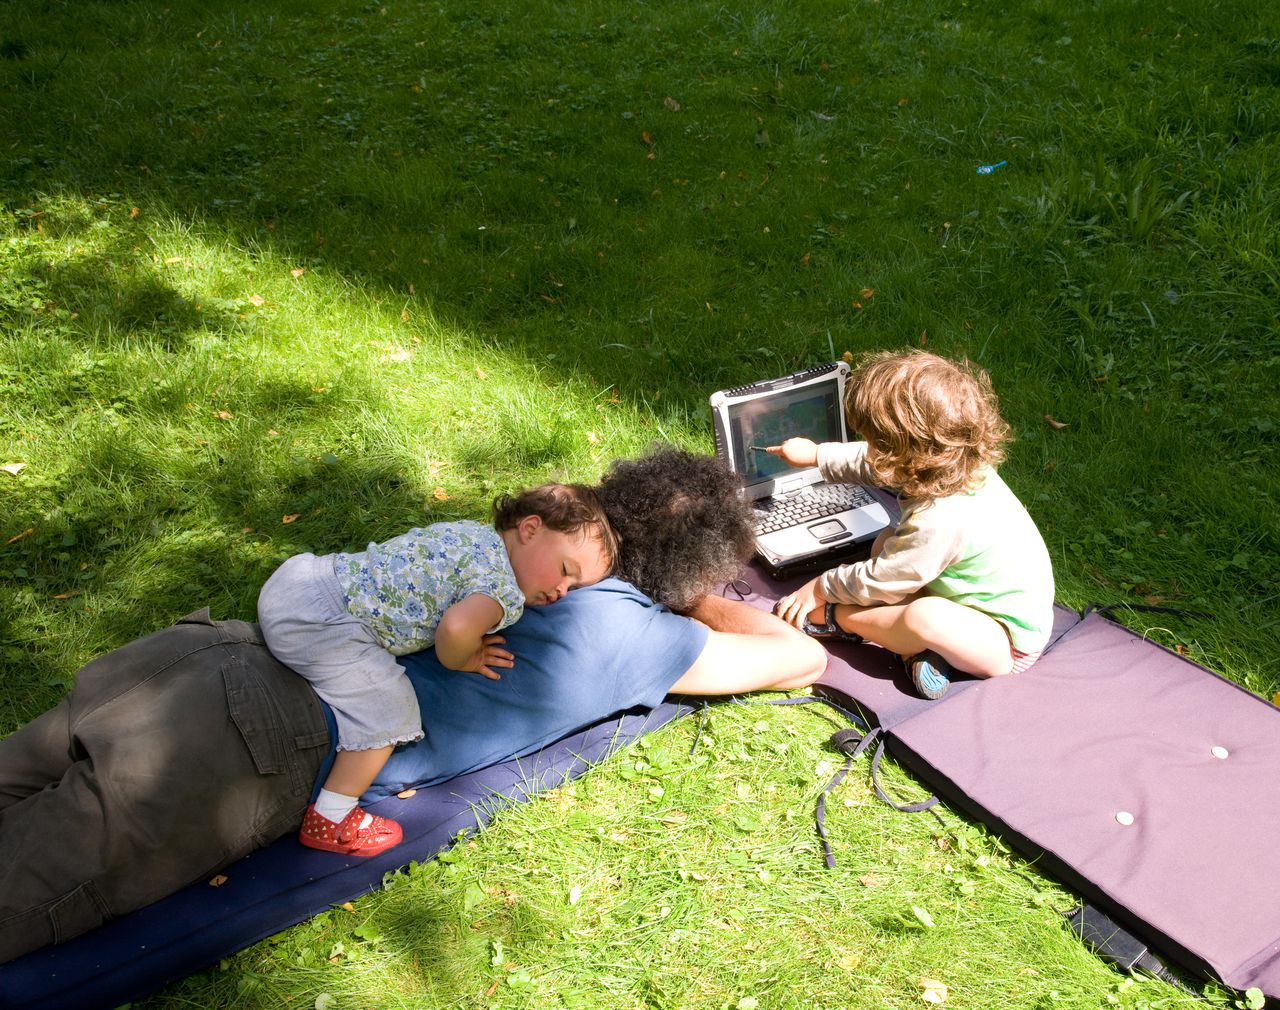 Luieren en spelen in de zon, Lounging and playing in the sun, foto: Iris Loonen, Hollandse Hoogte